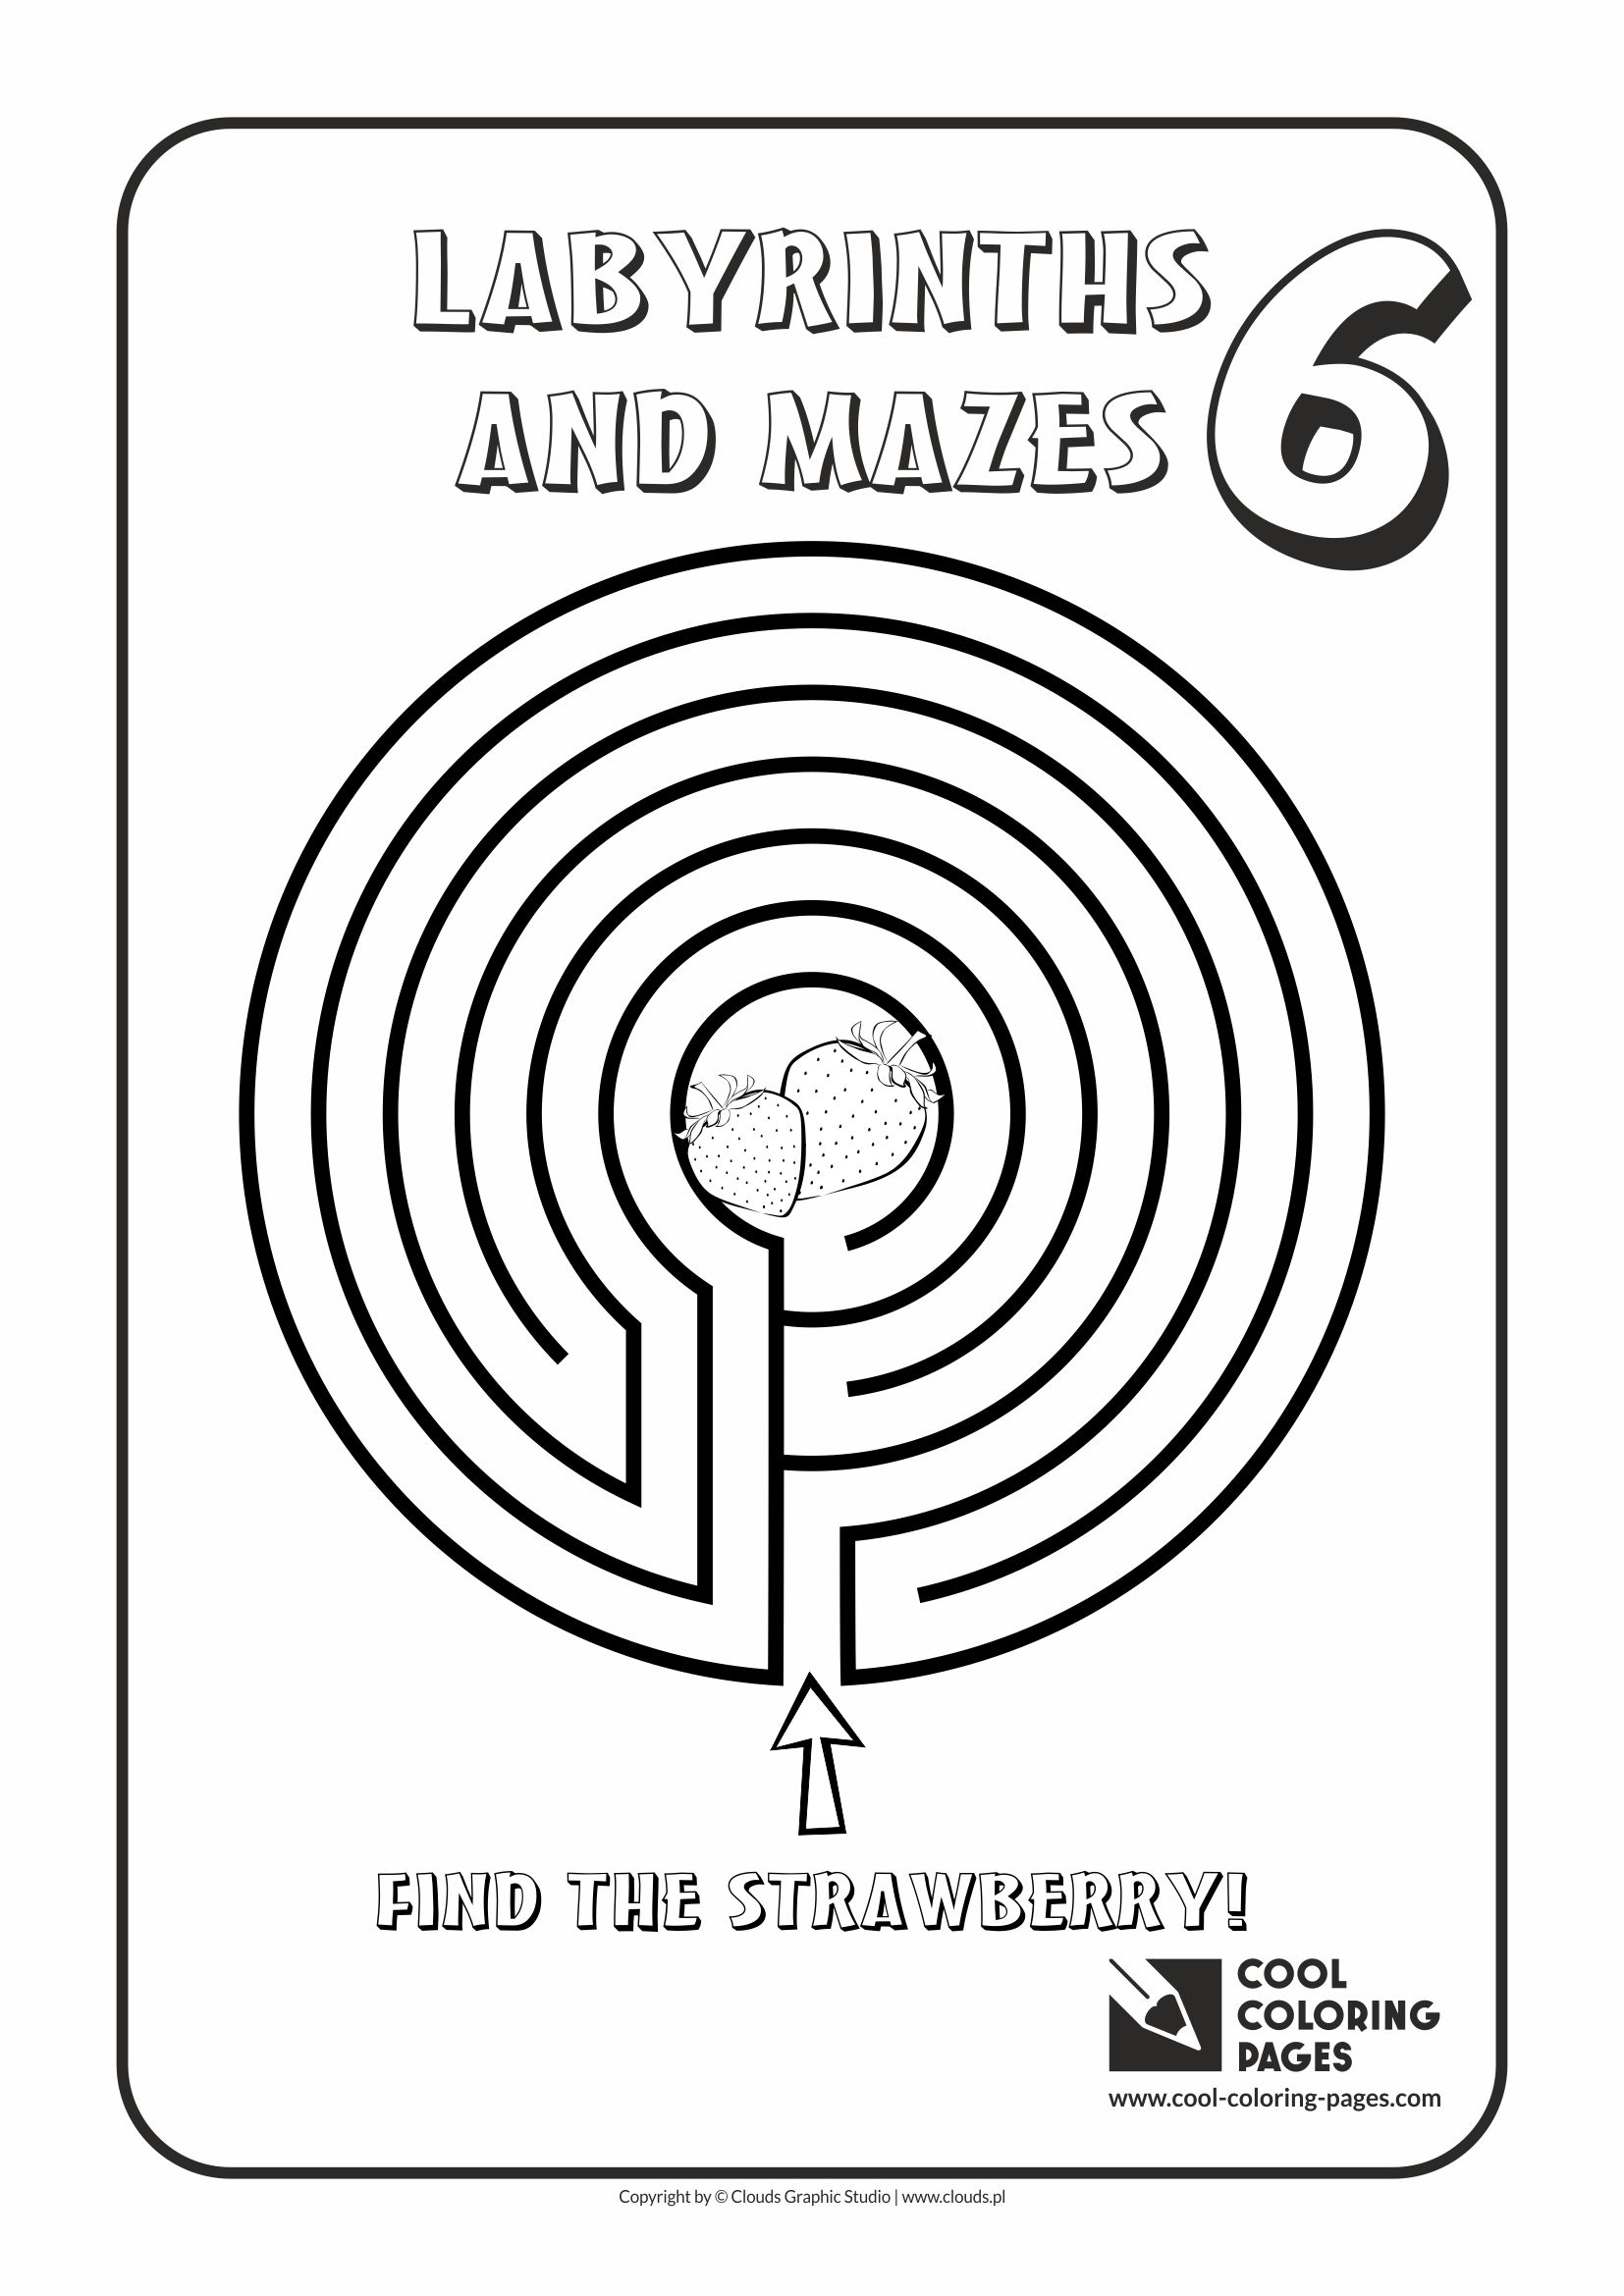 Cool Coloring Pages - Labyrinths and mazes / Maze no 6